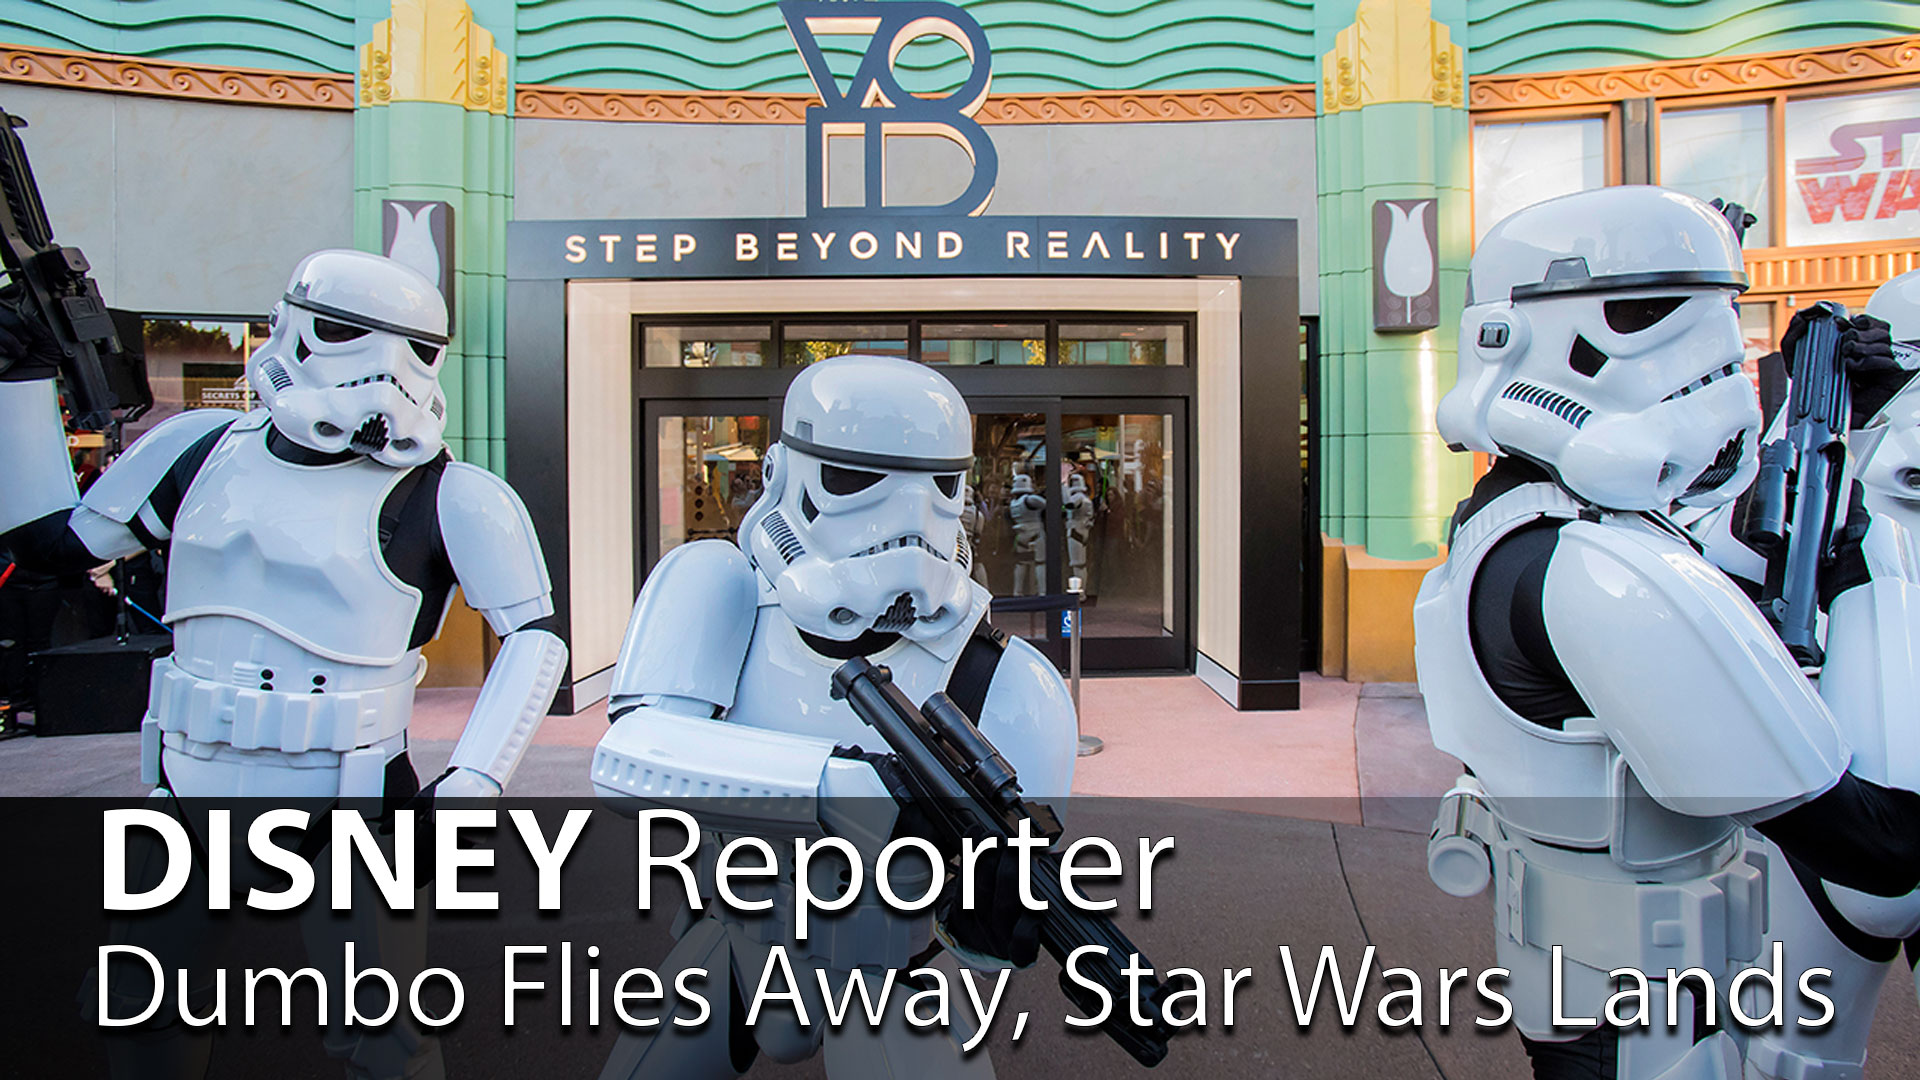 Dumbo Flies Away, Star Wars Lands - DISNEY Reporter